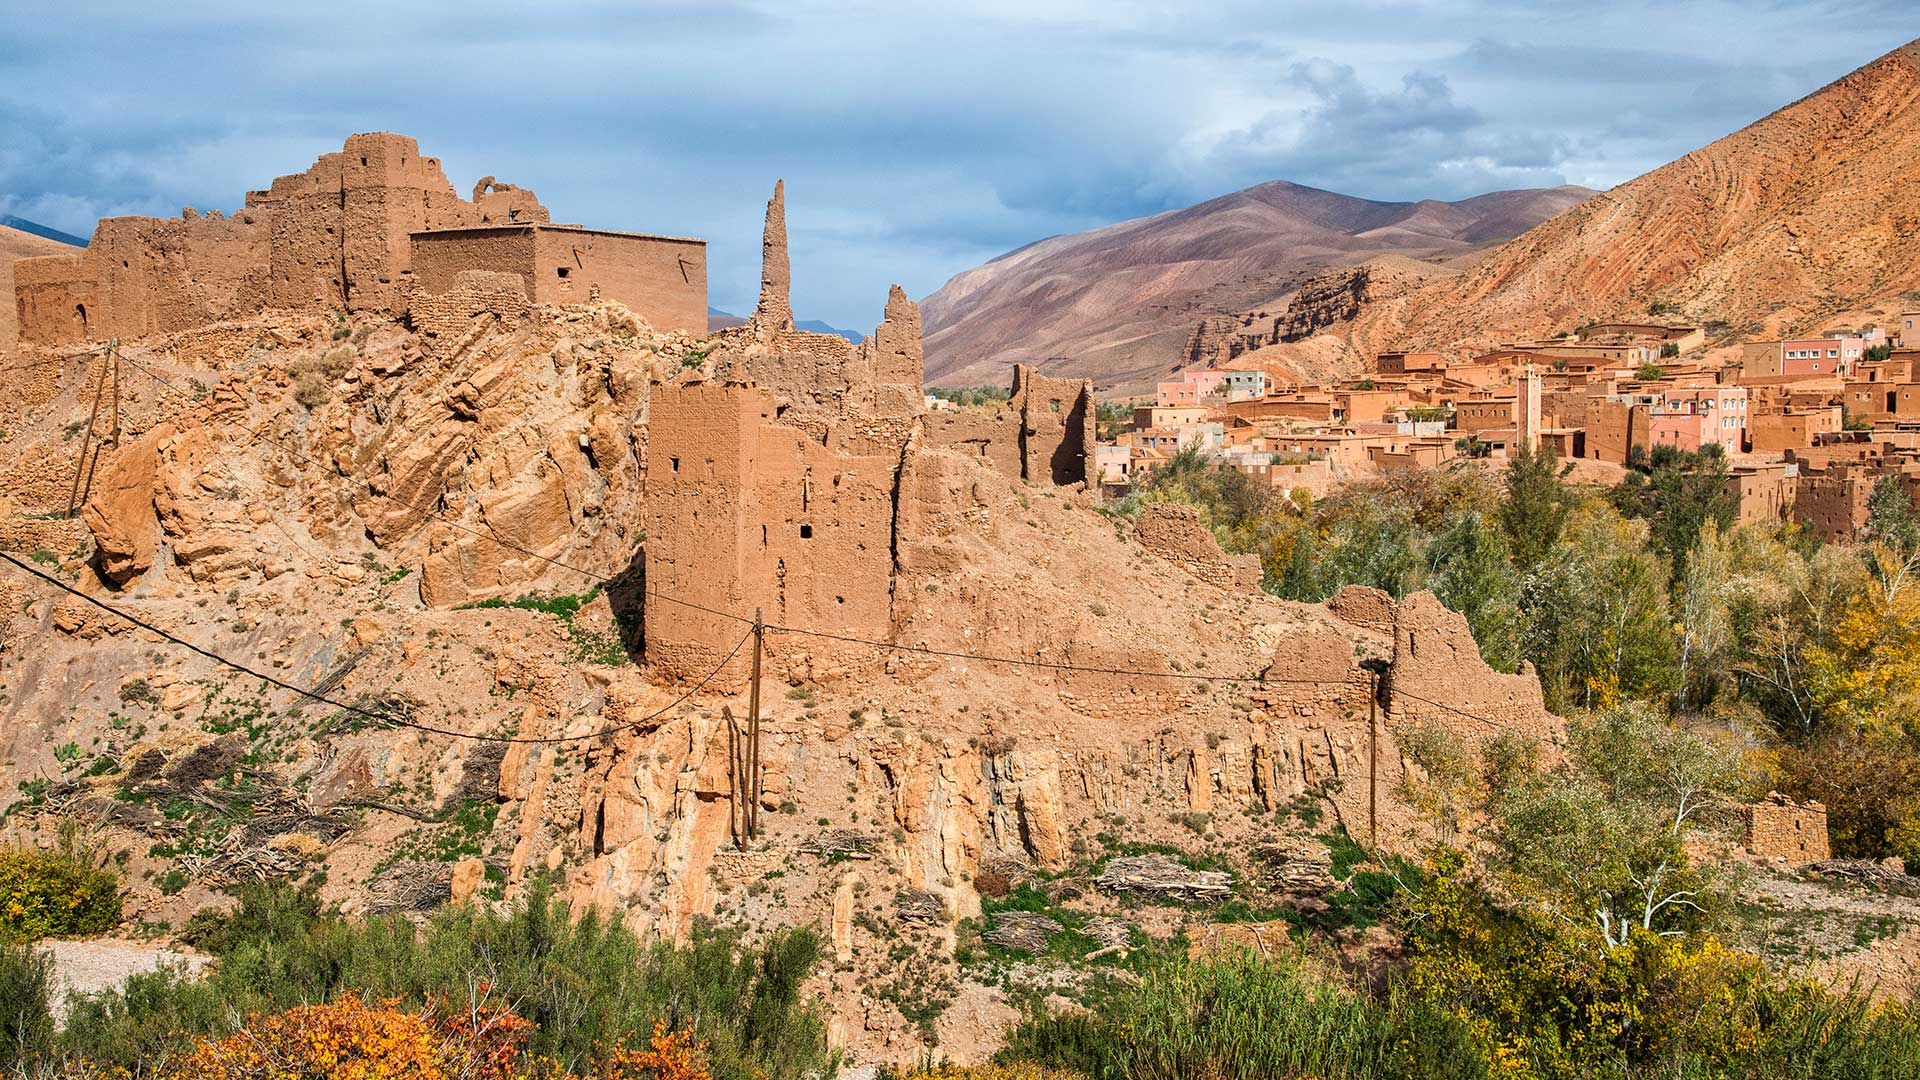 Traditional Berber town on the Route des Kasbahs, Ouarzazate Province